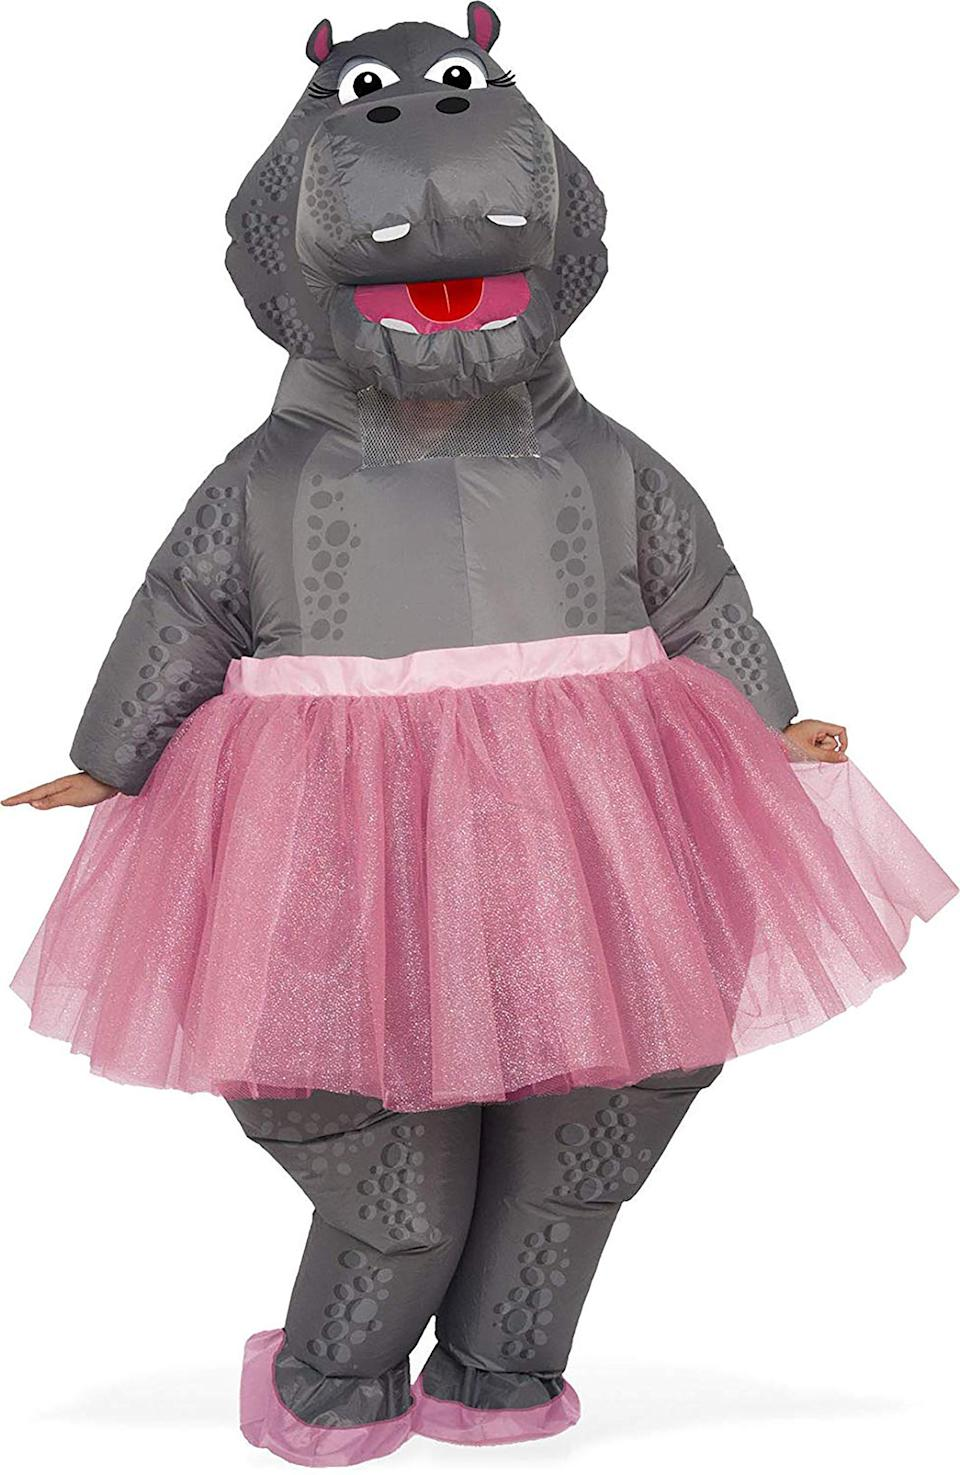 """<h2>Inflatable Hippo Ballerina Costume<br></h2><br><strong>What is it?</strong> An inflatable nylon hippo suit complete with glitter-encrusted tutu<br><br><strong>What the hottest take?</strong> """"After weeks of self isolating and daily Zoom meetings, I decided to show up to our video meetings in costume. After two weeks of meetings, I was running out of costumes at home, so I took to Amazon to search for the perfect costume. This hippo was very well priced, so I decided to invest in my personal amusement. To my surprise, my boss called us all back to the office the day after my package arrived, so I planned to wear this lovely hippo to our first day back to the office. Not only was it so much fun skipping down the sidewalk to my office in a giant hippo but the reaction of everyone at the office was priceless. Two thumbs way up! This is going to get used again and again.""""<br><br><strong>Rubie's Costume Co.</strong> Inflatable Ballerina Hippo Costume, $, available at <a href=""""https://amzn.to/2OfCpw2"""" rel=""""nofollow noopener"""" target=""""_blank"""" data-ylk=""""slk:Amazon"""" class=""""link rapid-noclick-resp"""">Amazon</a>"""